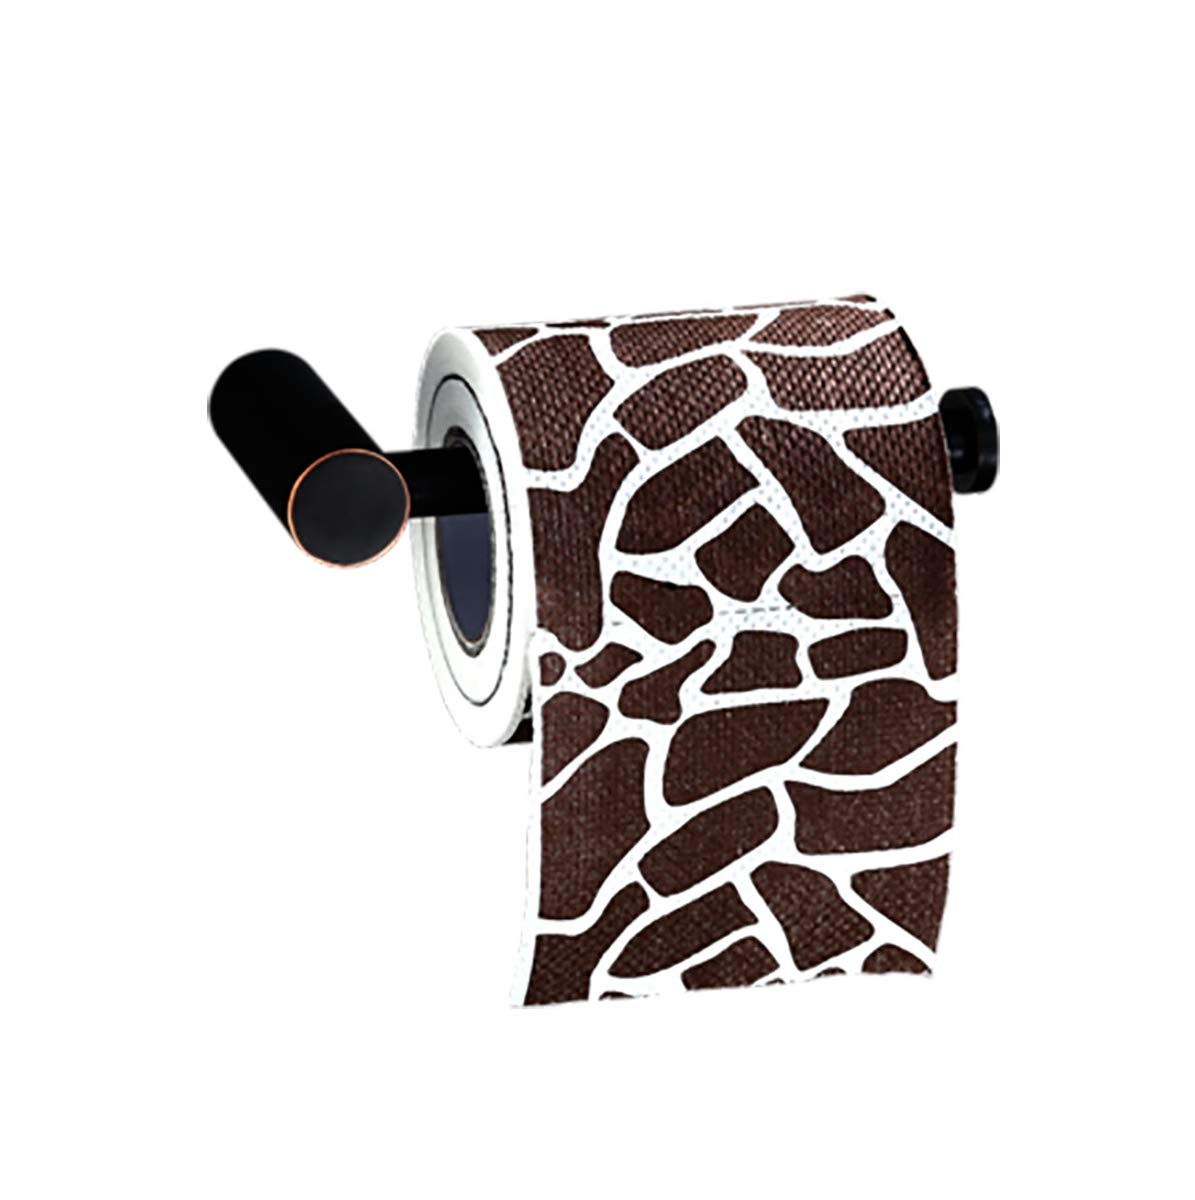 Q&F Paper Towel Holder,Wall Mount Toilet Paper Holder Tissue Roll Hanger,Mounts To Walls Or Under Cabinets-brushed Copper